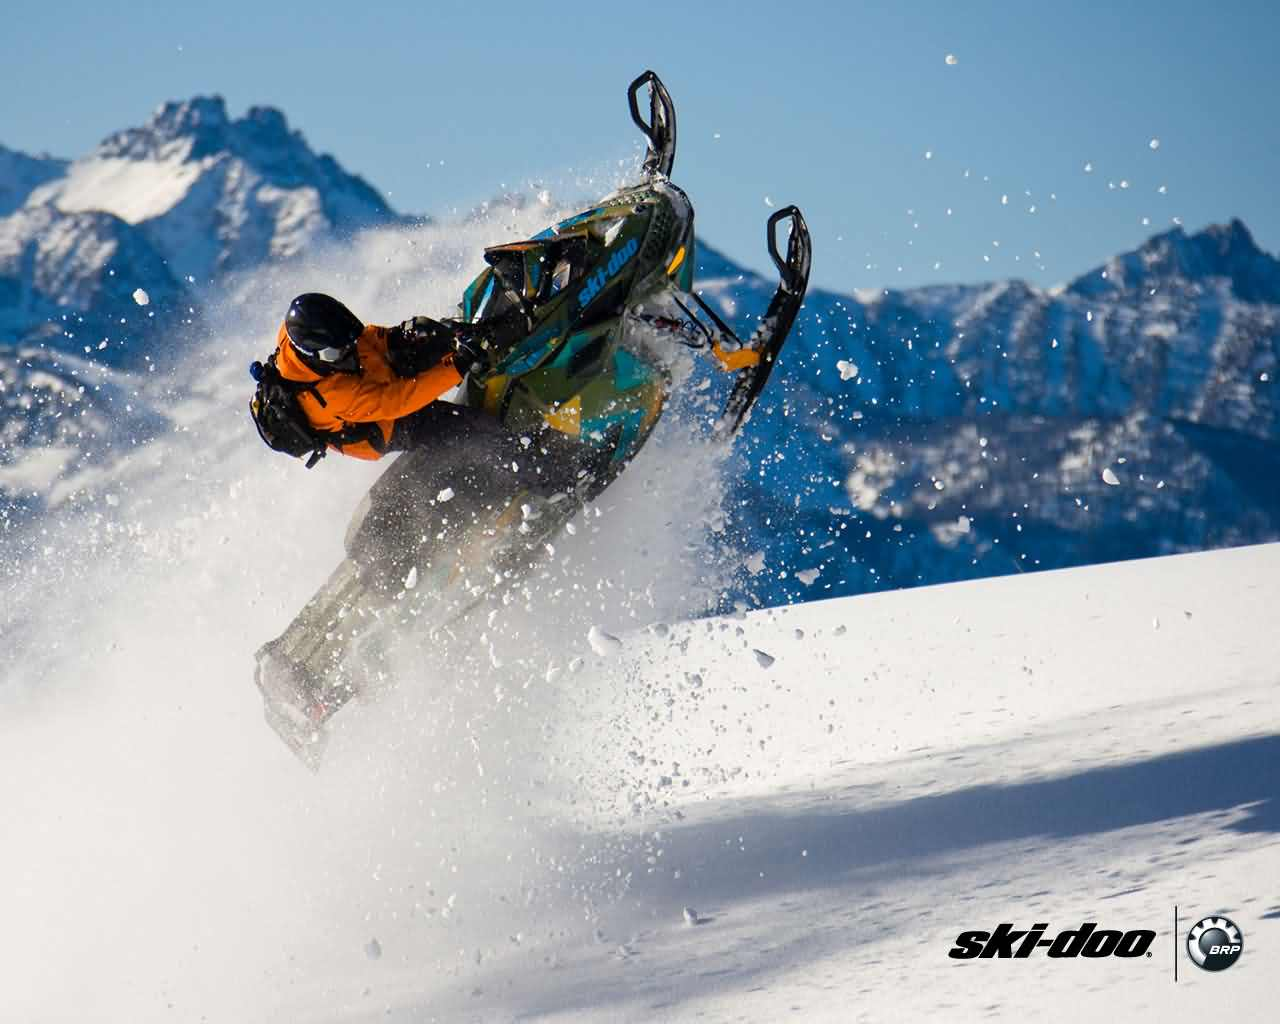 File Name 887483 High Quality Ski Doo Wallpaper Full HD Pictures 1280x1024